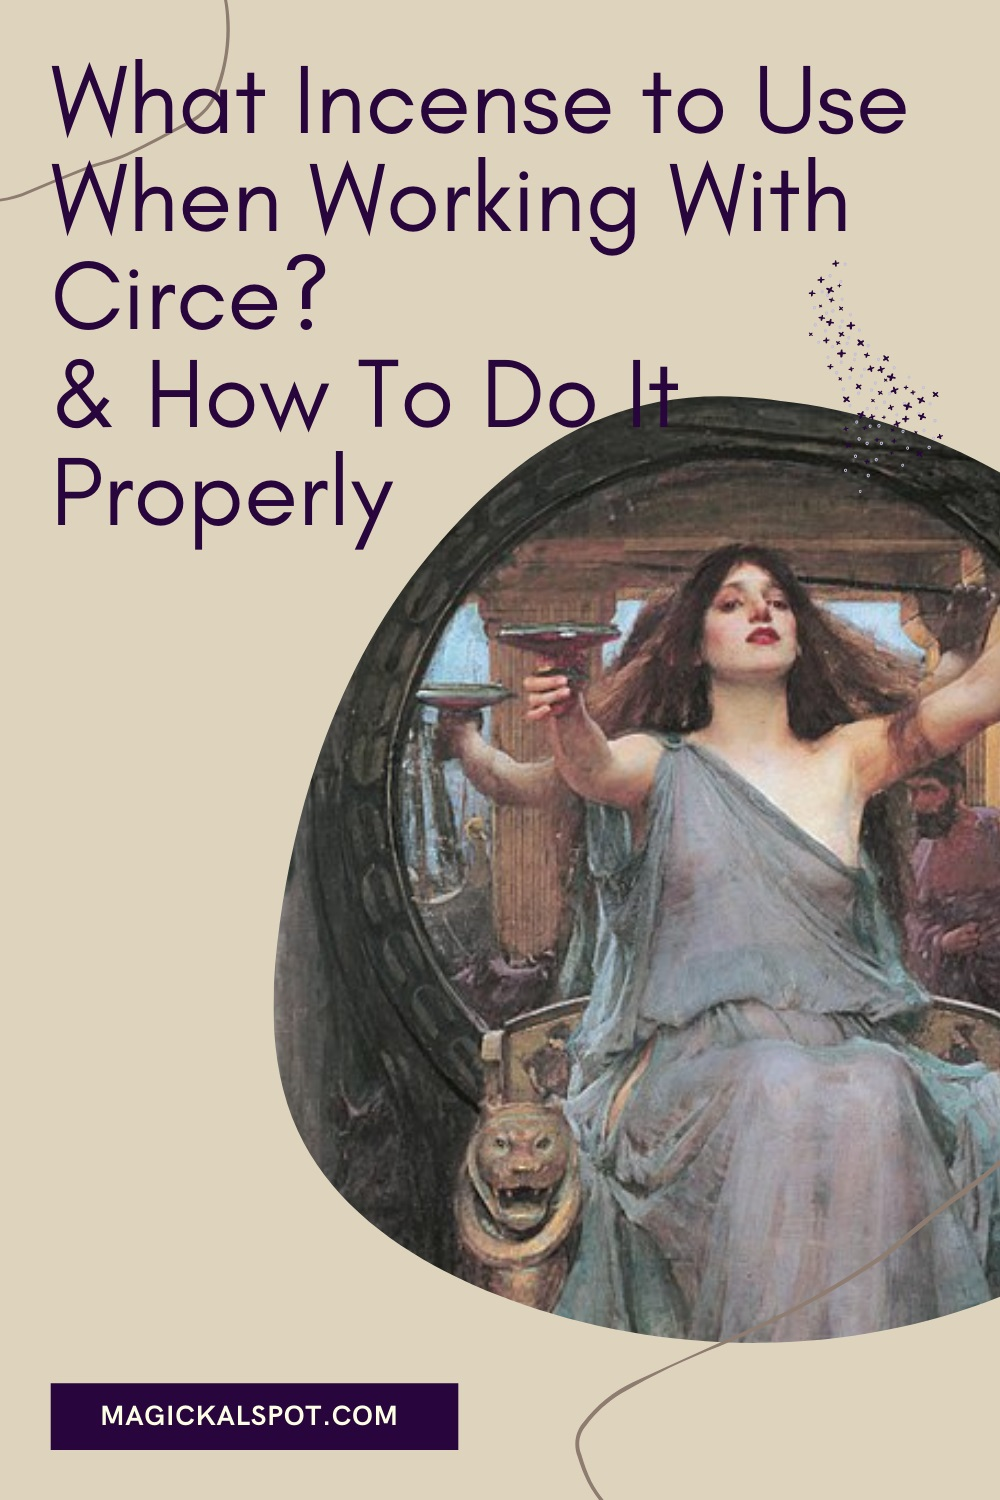 What Incense to Use When Working With Circe by Magickal Spot